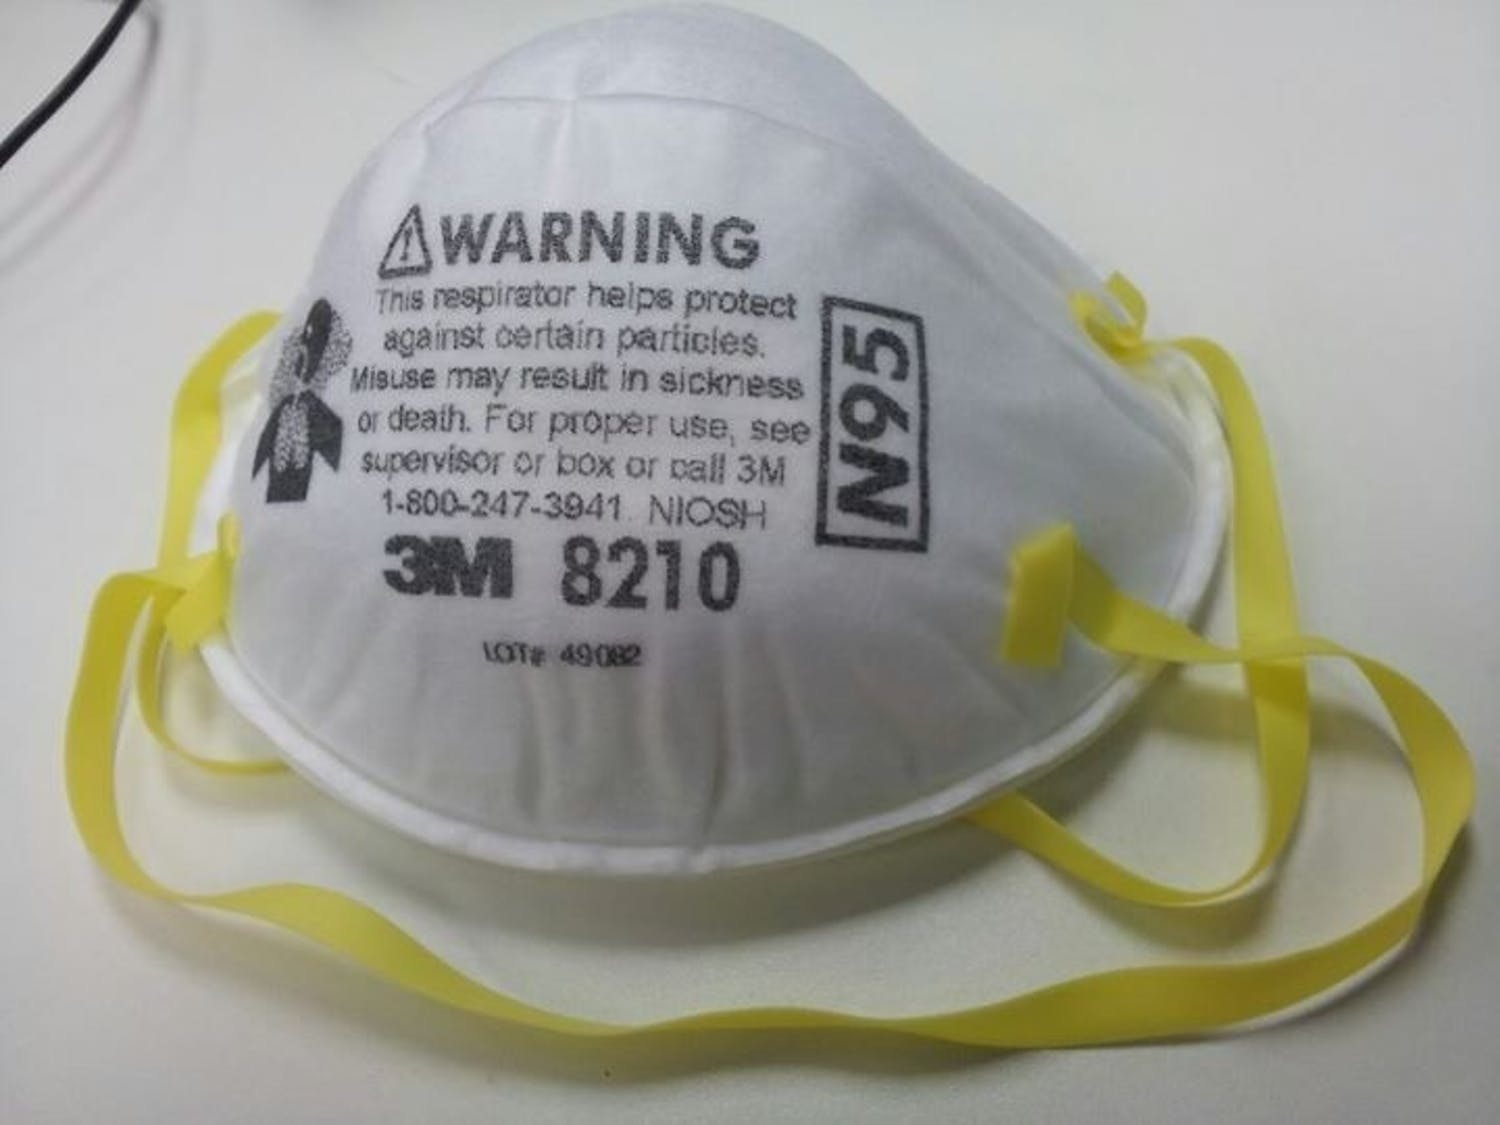 ICE agents are requesting a hold of 45,000 of these N95 surgical masks, a move that could make less of them available to medical providers battling the coronavirus. Photo courtesy of Wikimedia Commons.